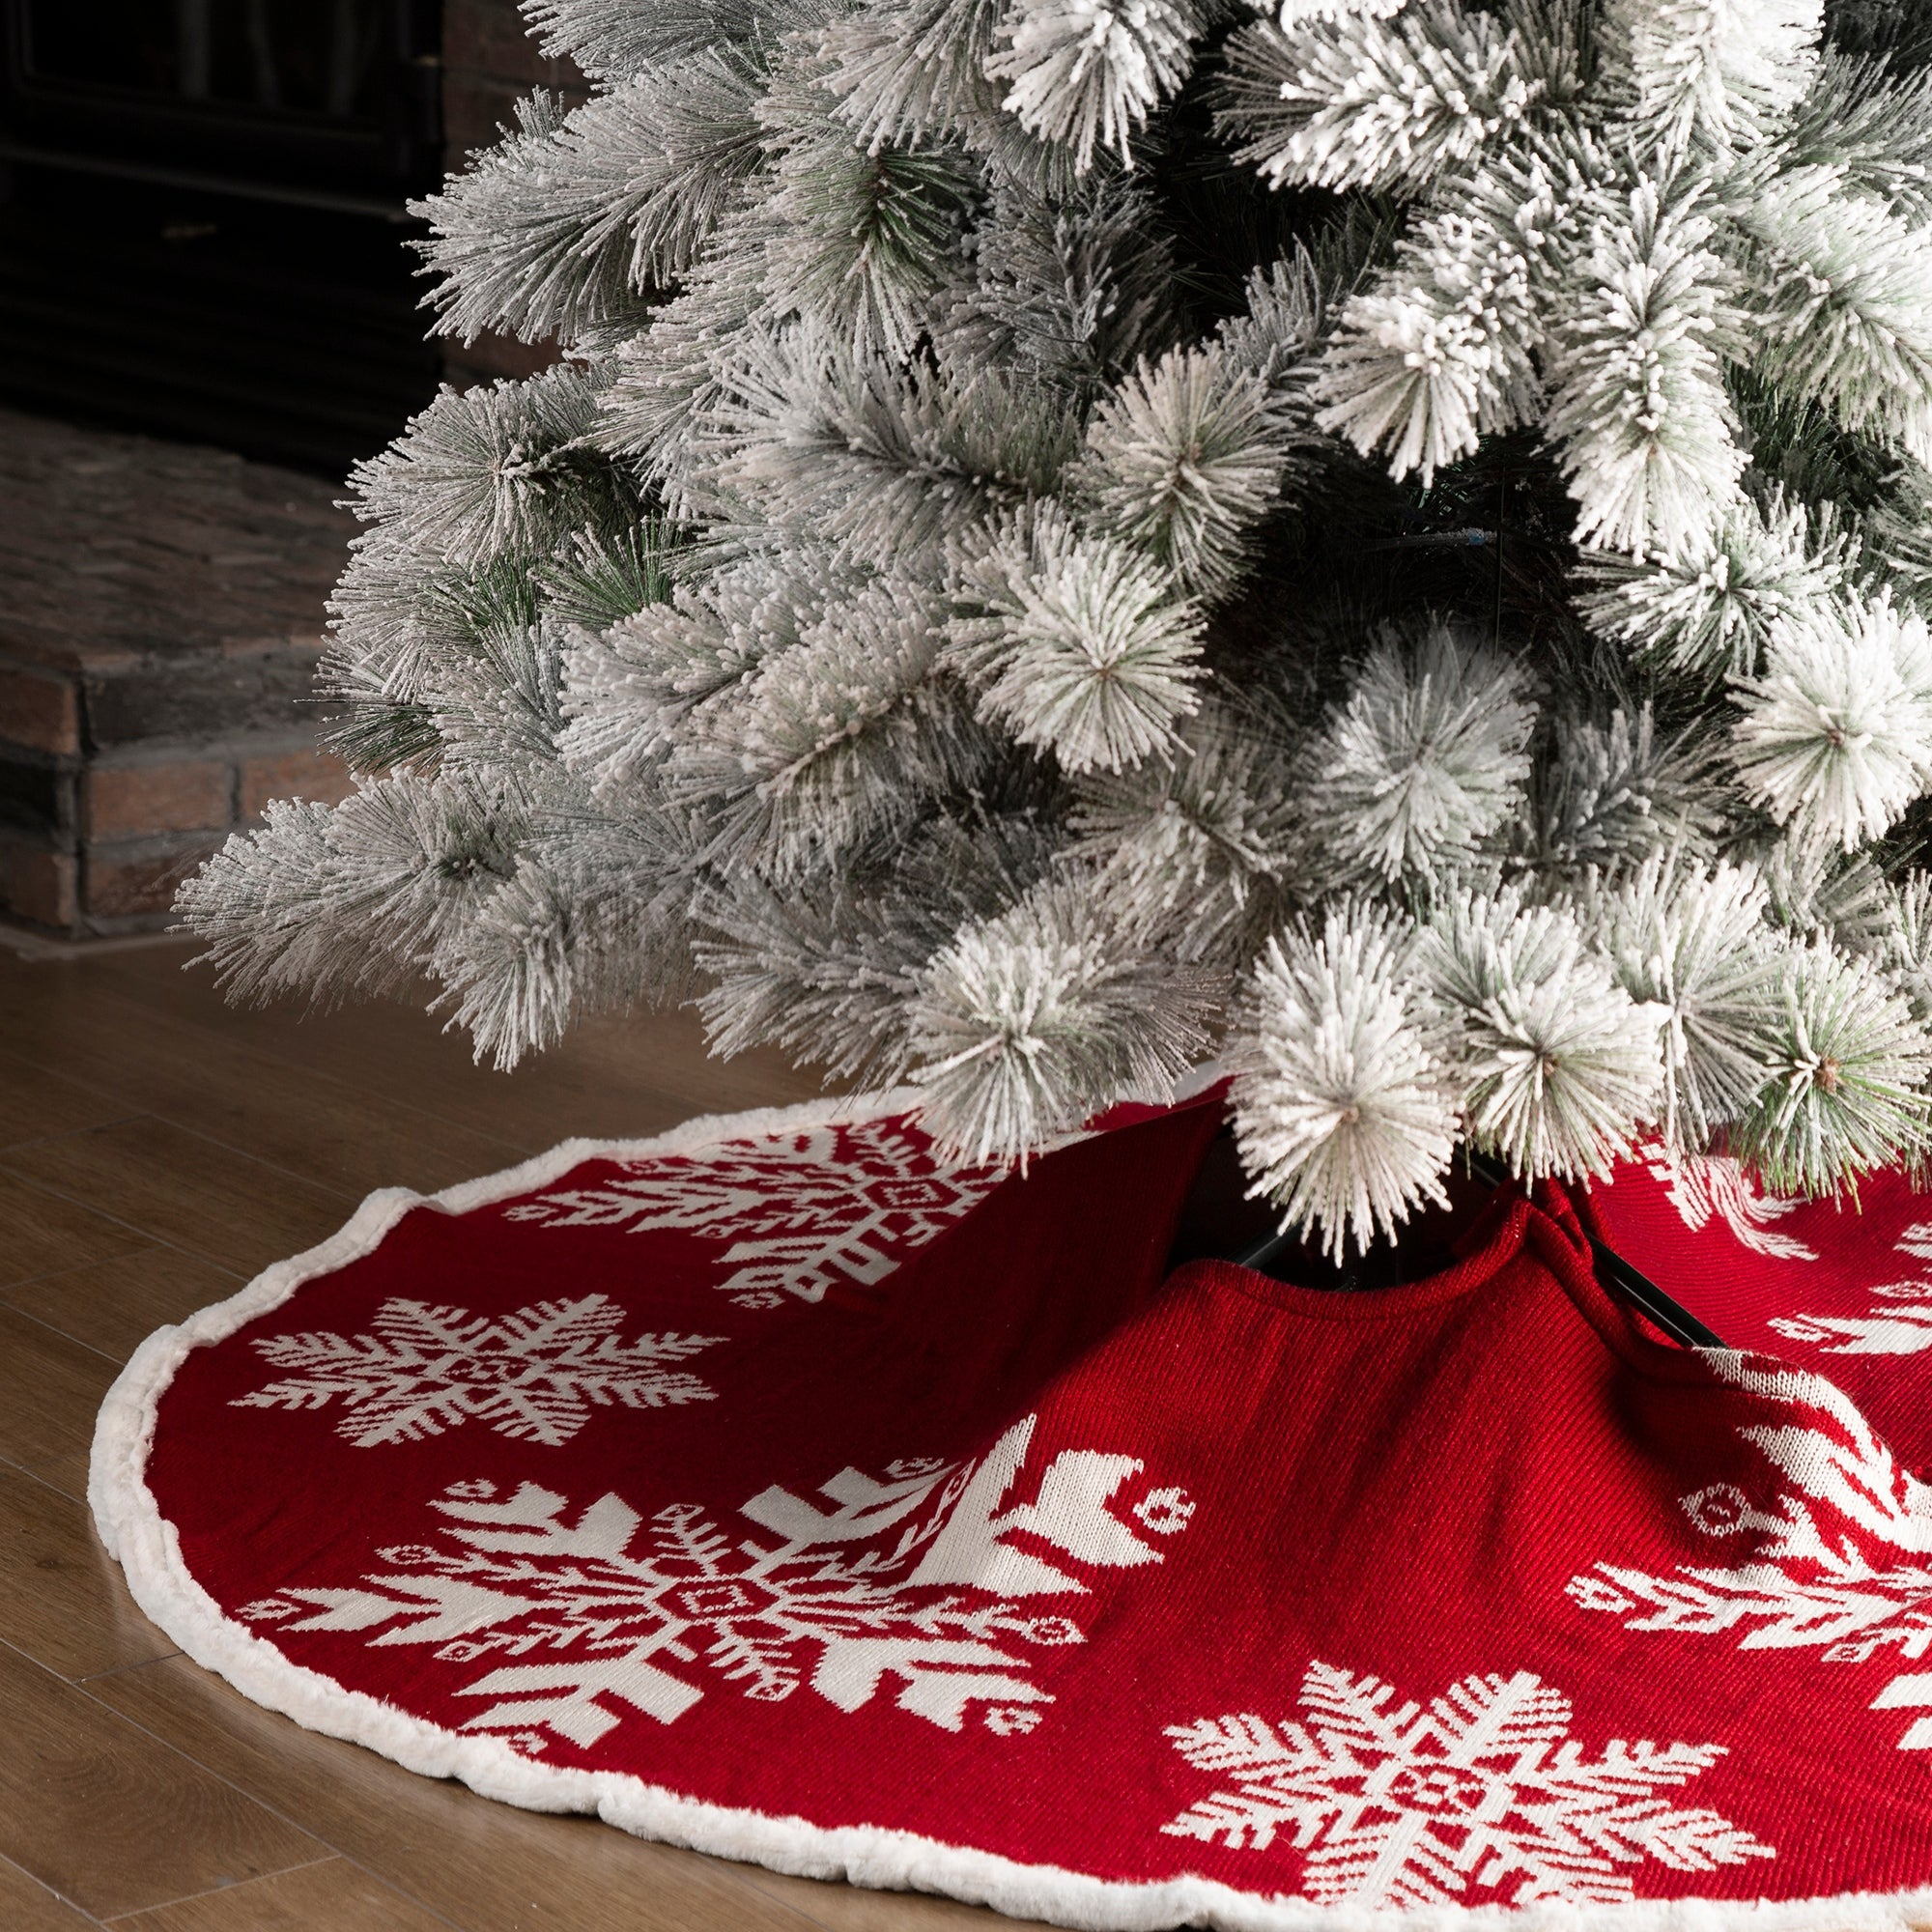 Country Rustic Xmas Decorations Meriwoods Christmas Tree Skirt 48 Inch Red White Large Embroidered Nutcracker Tree Collar Seasonal Decor Nutcrackers